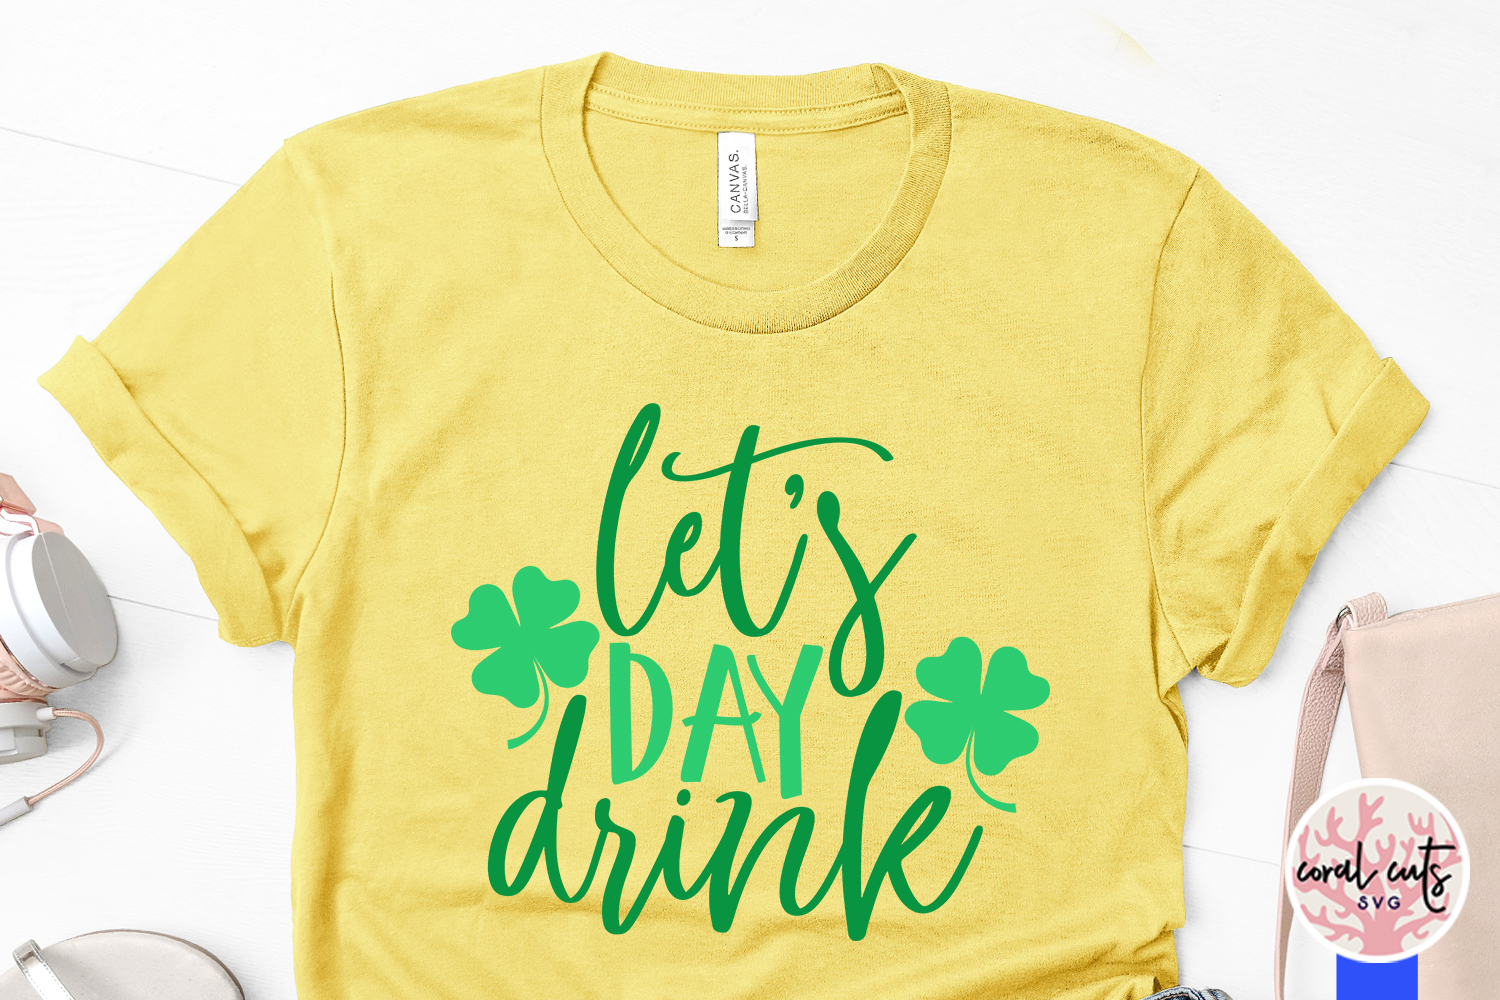 Let's day drink - St. Patrick's Day SVG EPS DXF PNG example image 3